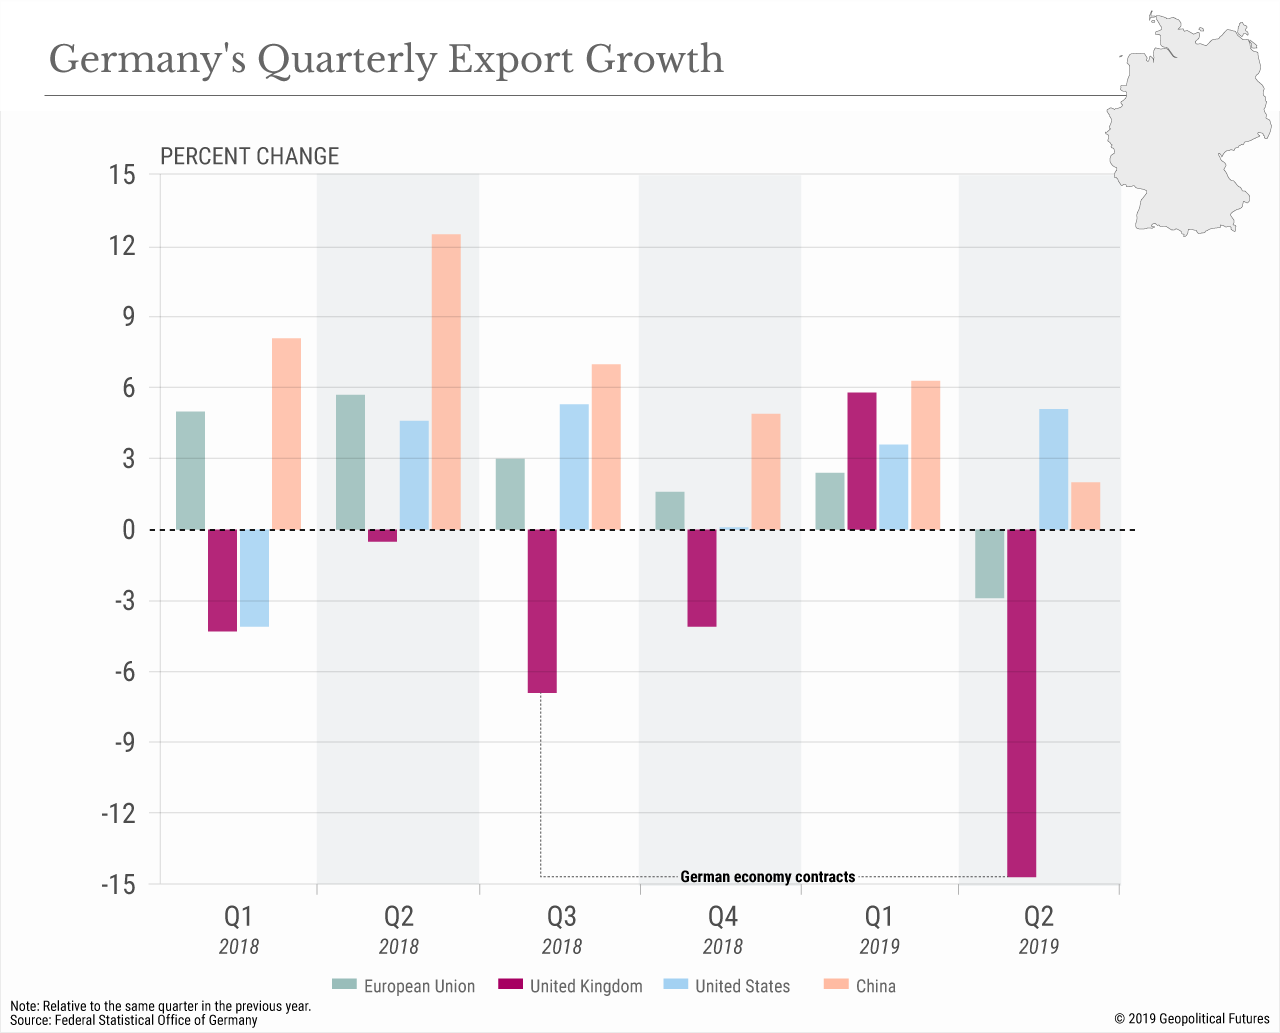 Germany's Quarterly Export Growth